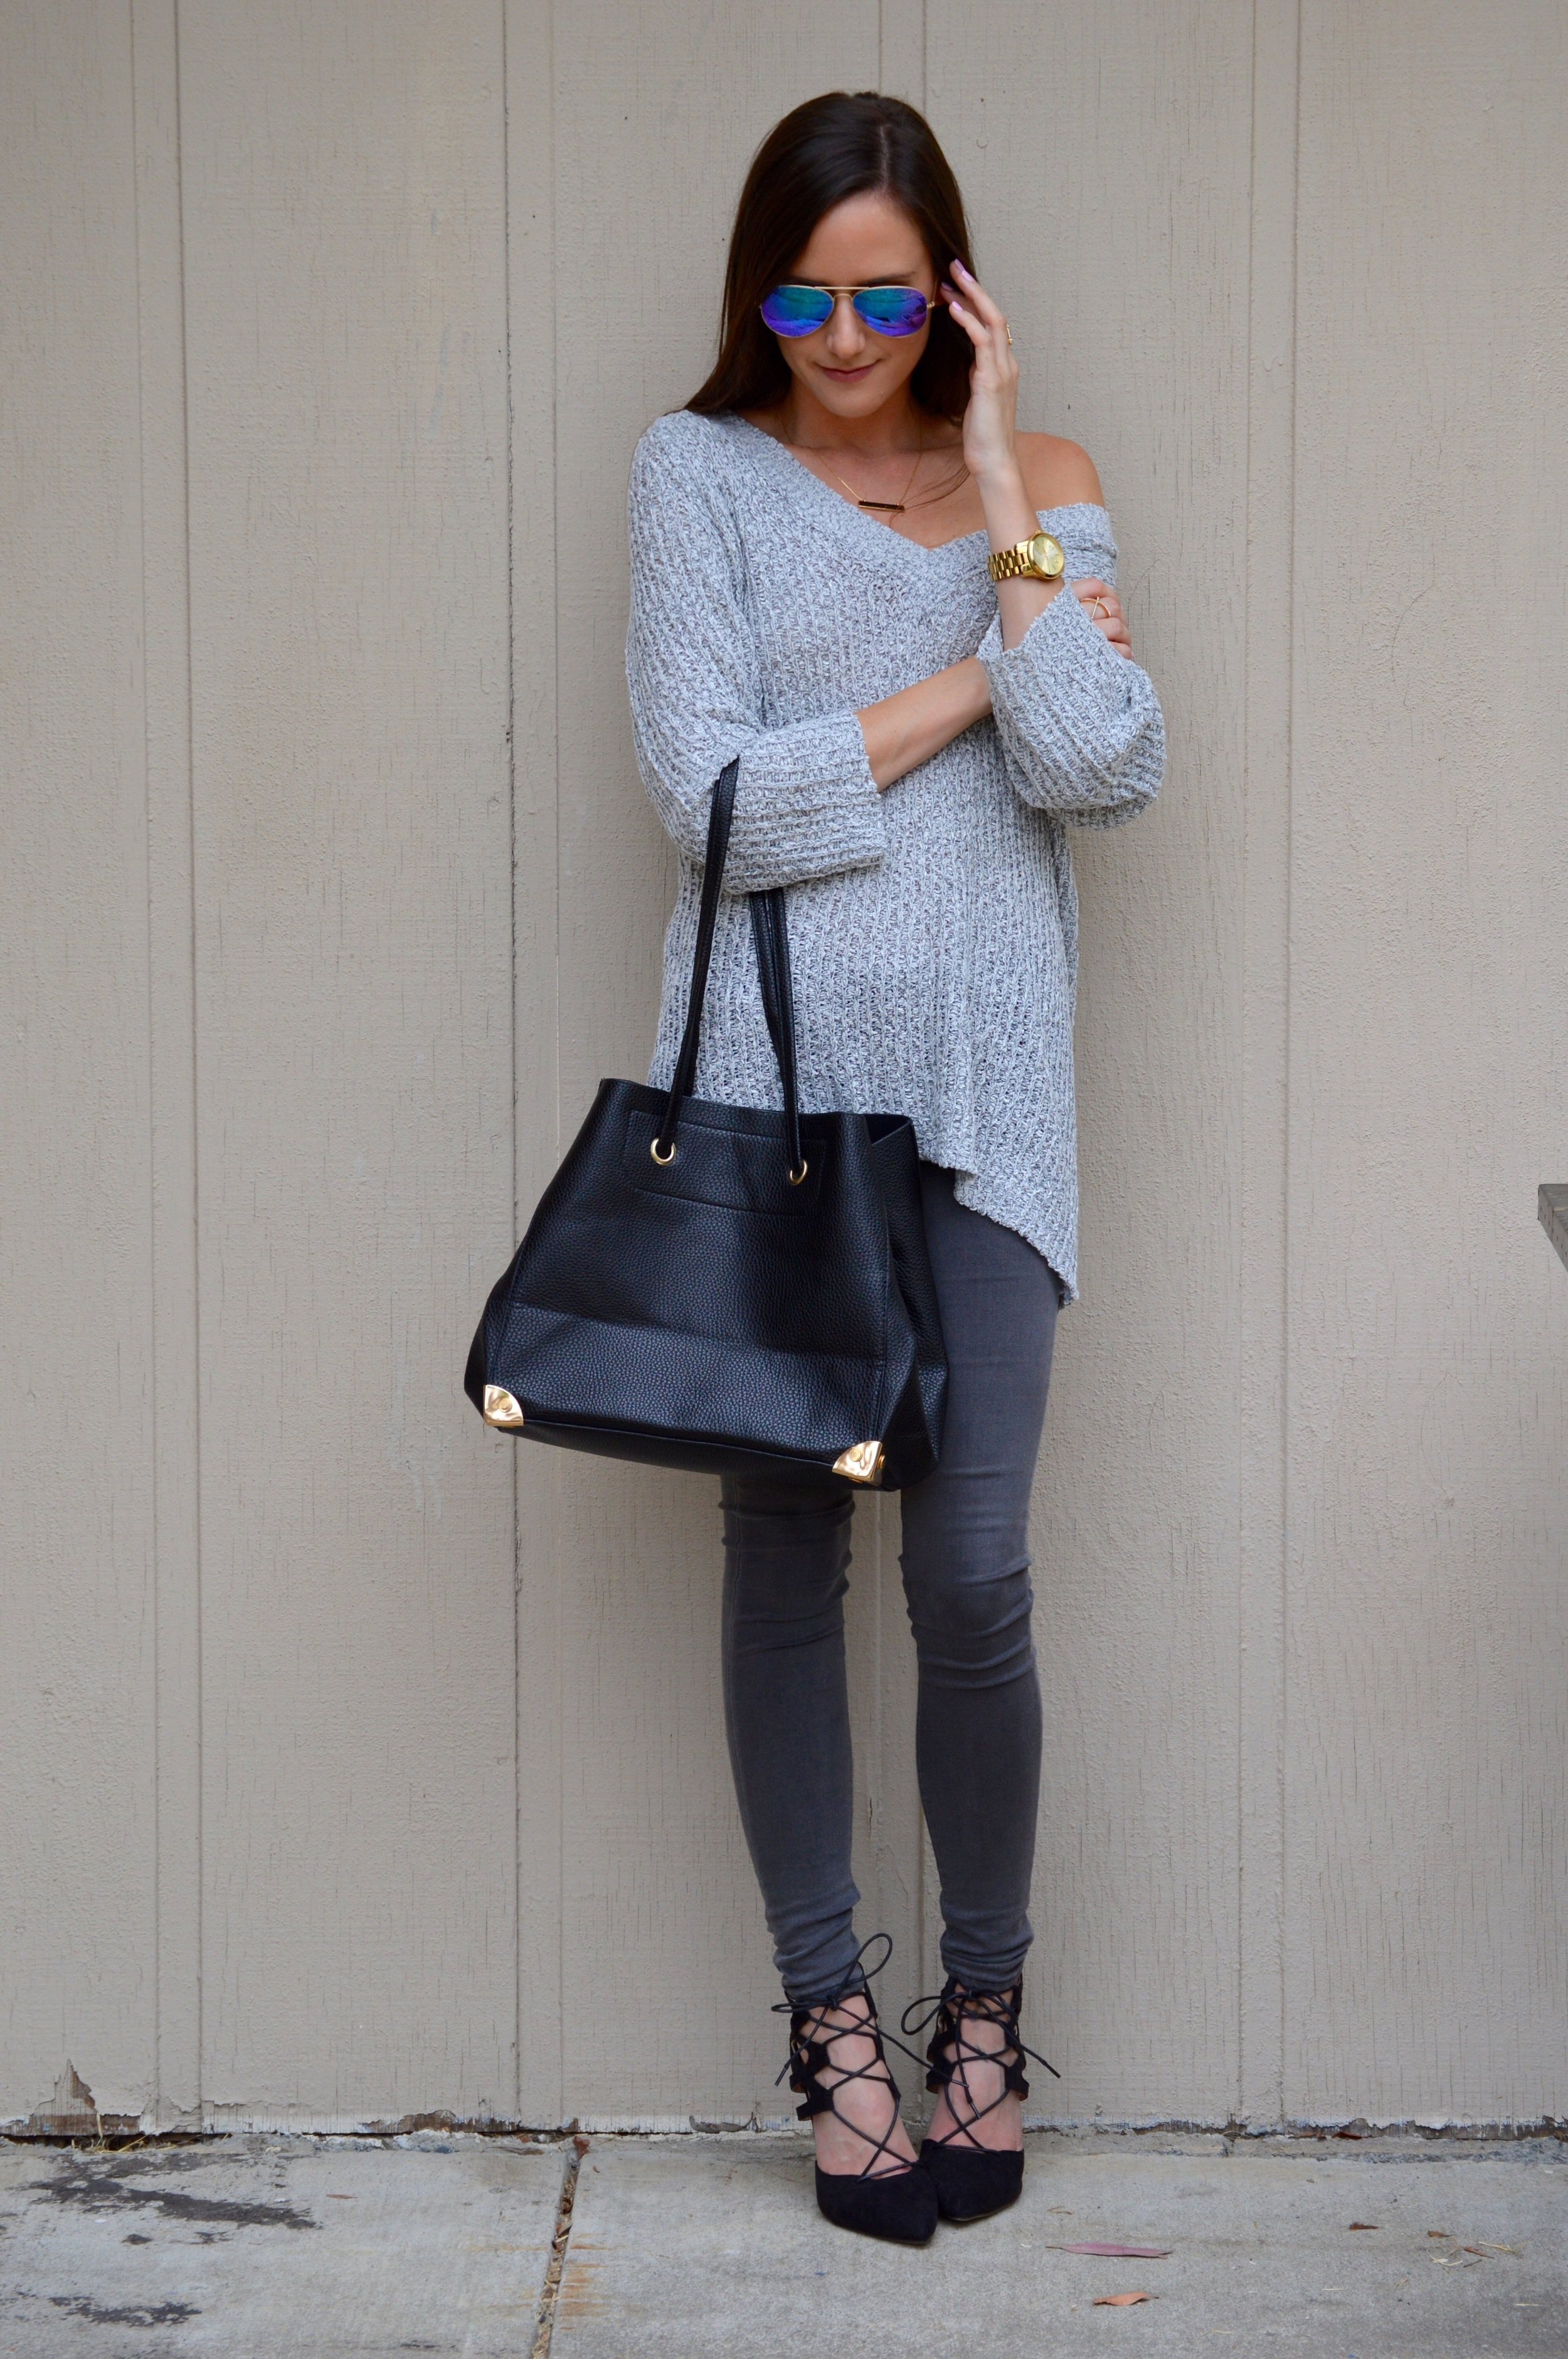 Shop the Look Below.  Sweater: c/o Lookbook Store--sold out, but similar  here  and  here . Jeans: AG (sold old) similar  here . Shoes: c/o  Sheinside . Bag: c/o  Lookbook Store . Watch:  Michael Kors . Sunnies: Old. See similar  here  and  here  and  here  for $12! . Ring: c/o  BaubleBar . Necklace: c/o  BaubleBar --currently on waitlist, but similar  here.